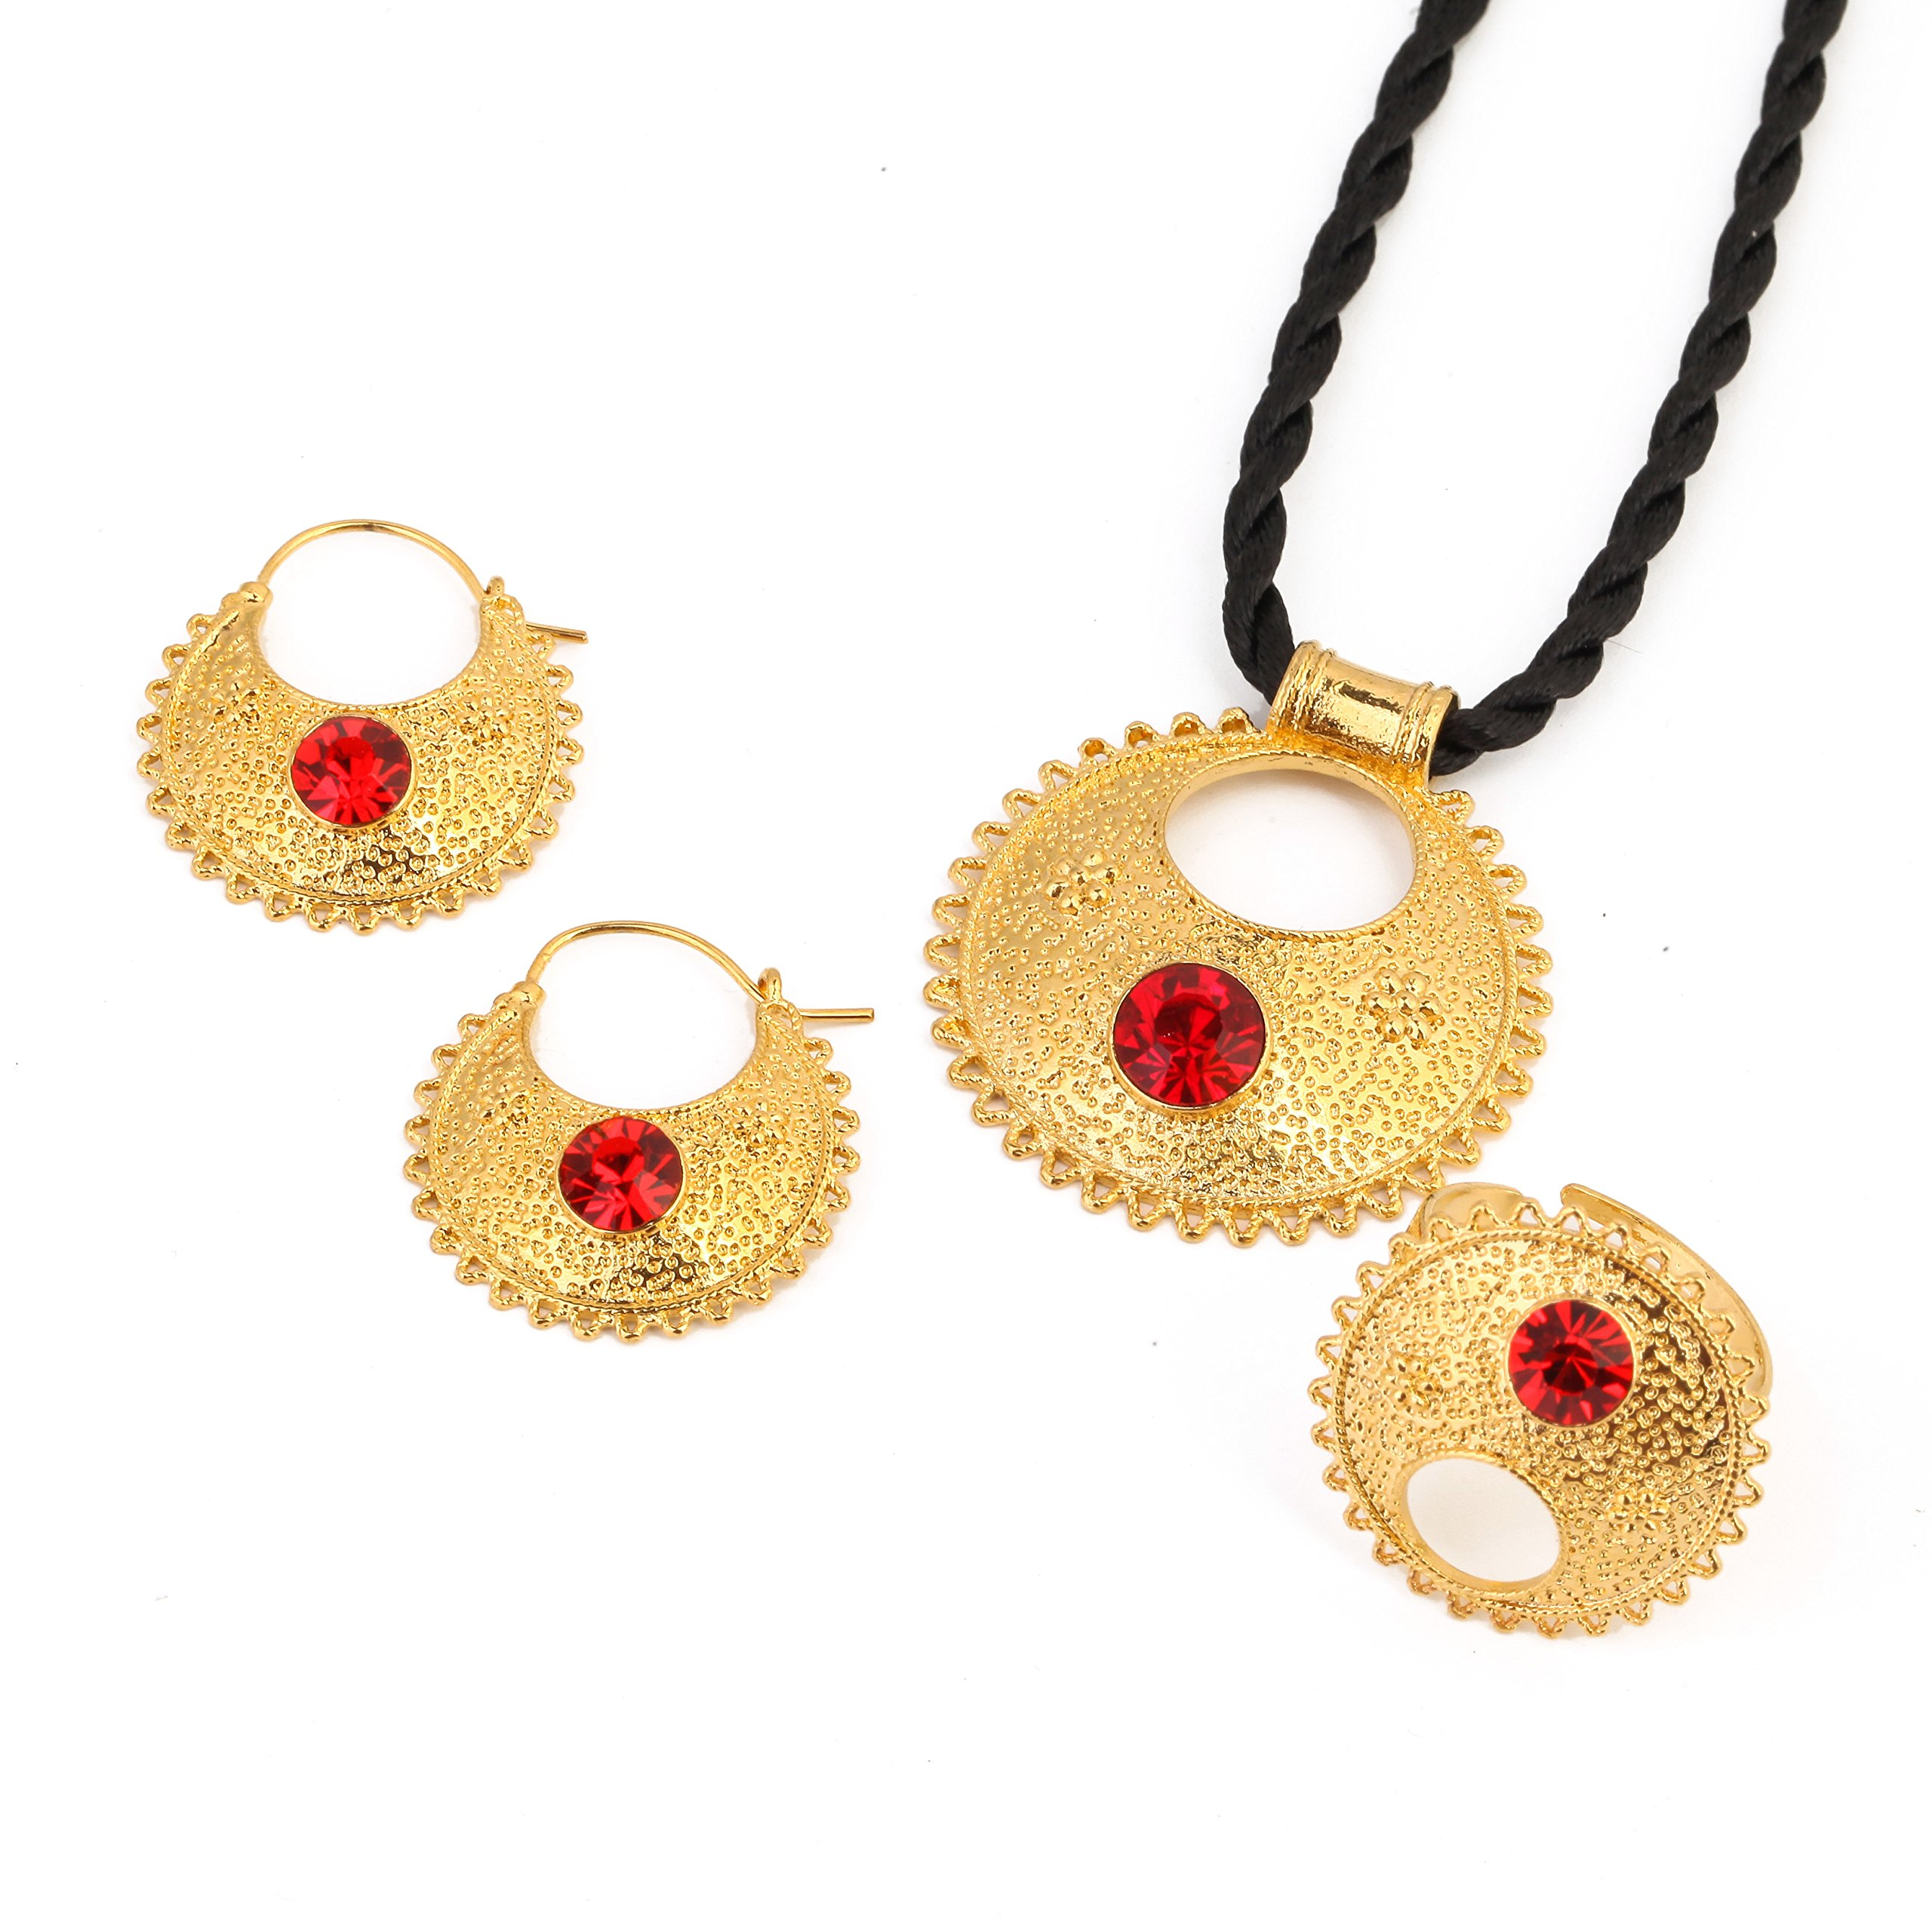 Stone Ethiopian New Jewelry Pendant Necklace Earrings Ring Ethiopia Africa Bride Wedding Eritrea Sets (Red)